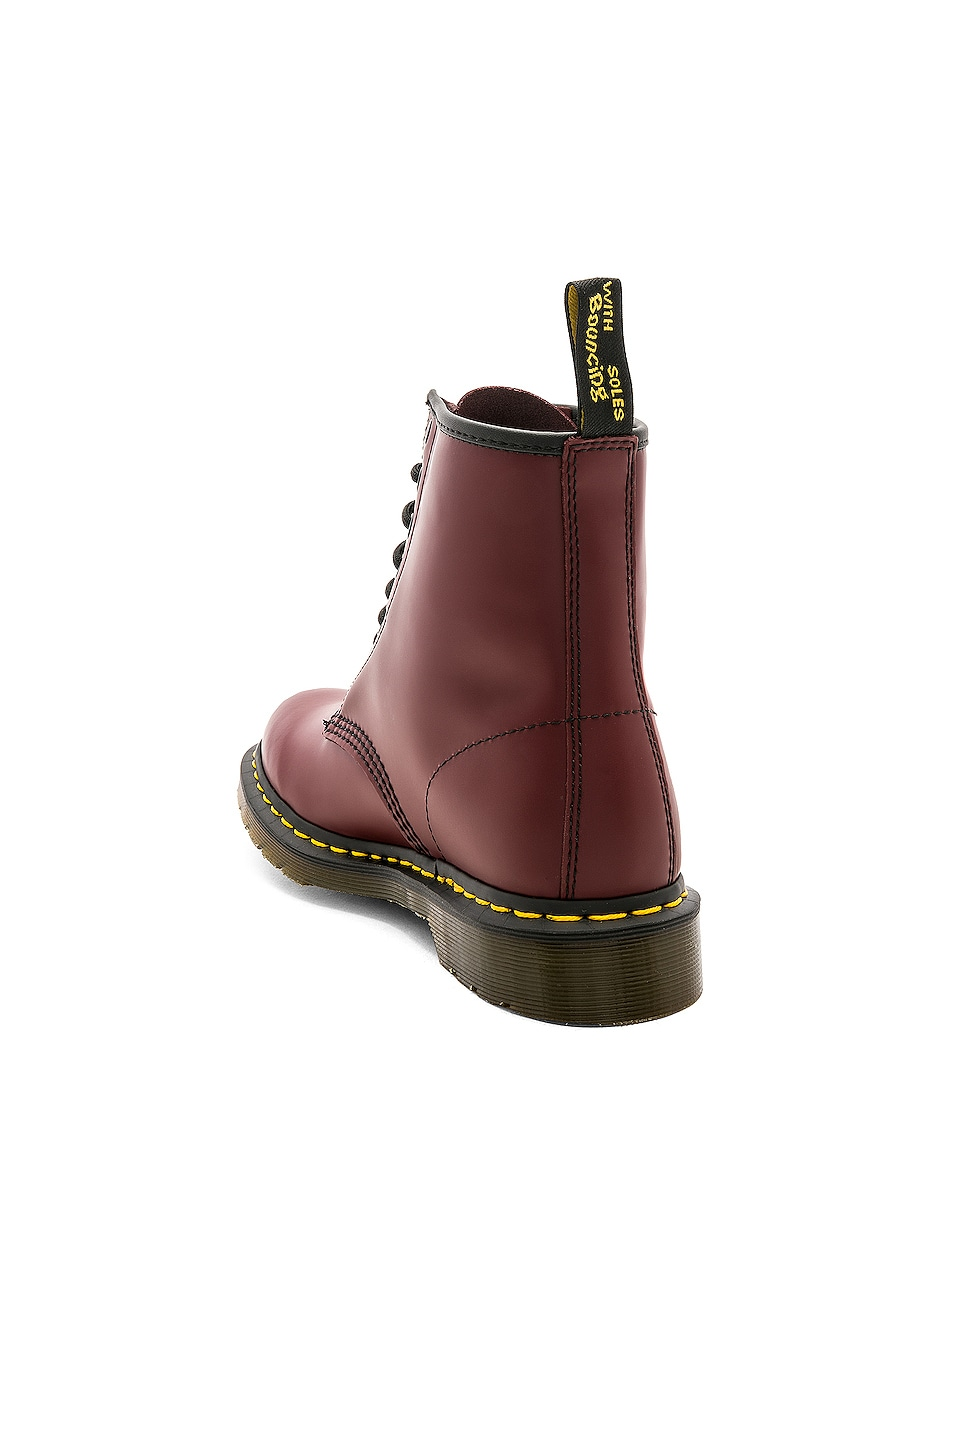 Image 3 of Dr. Martens 1460 8 Eye Boot in Cherry Red